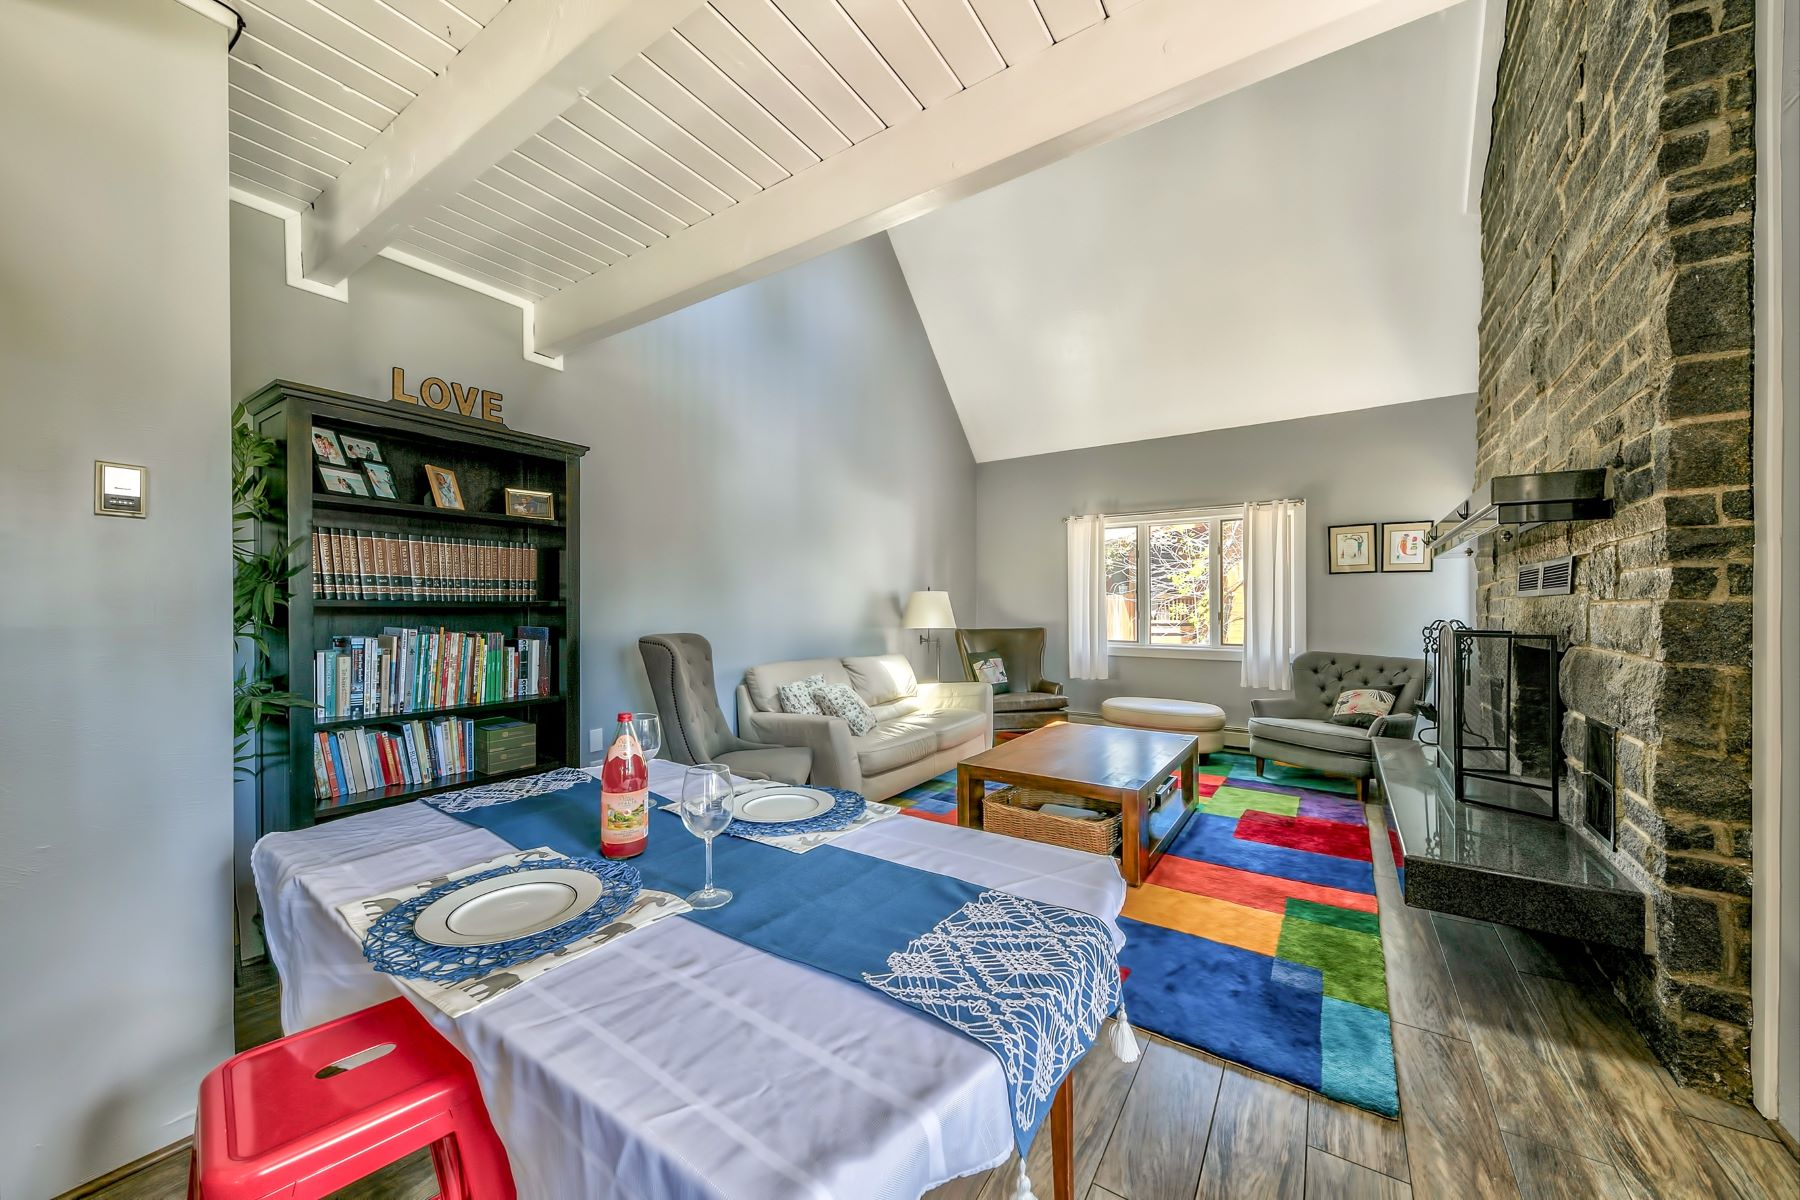 Additional photo for property listing at 15514 Archery Way, Truckee, CA 15514 Archery Way Truckee, California 96161 Estados Unidos